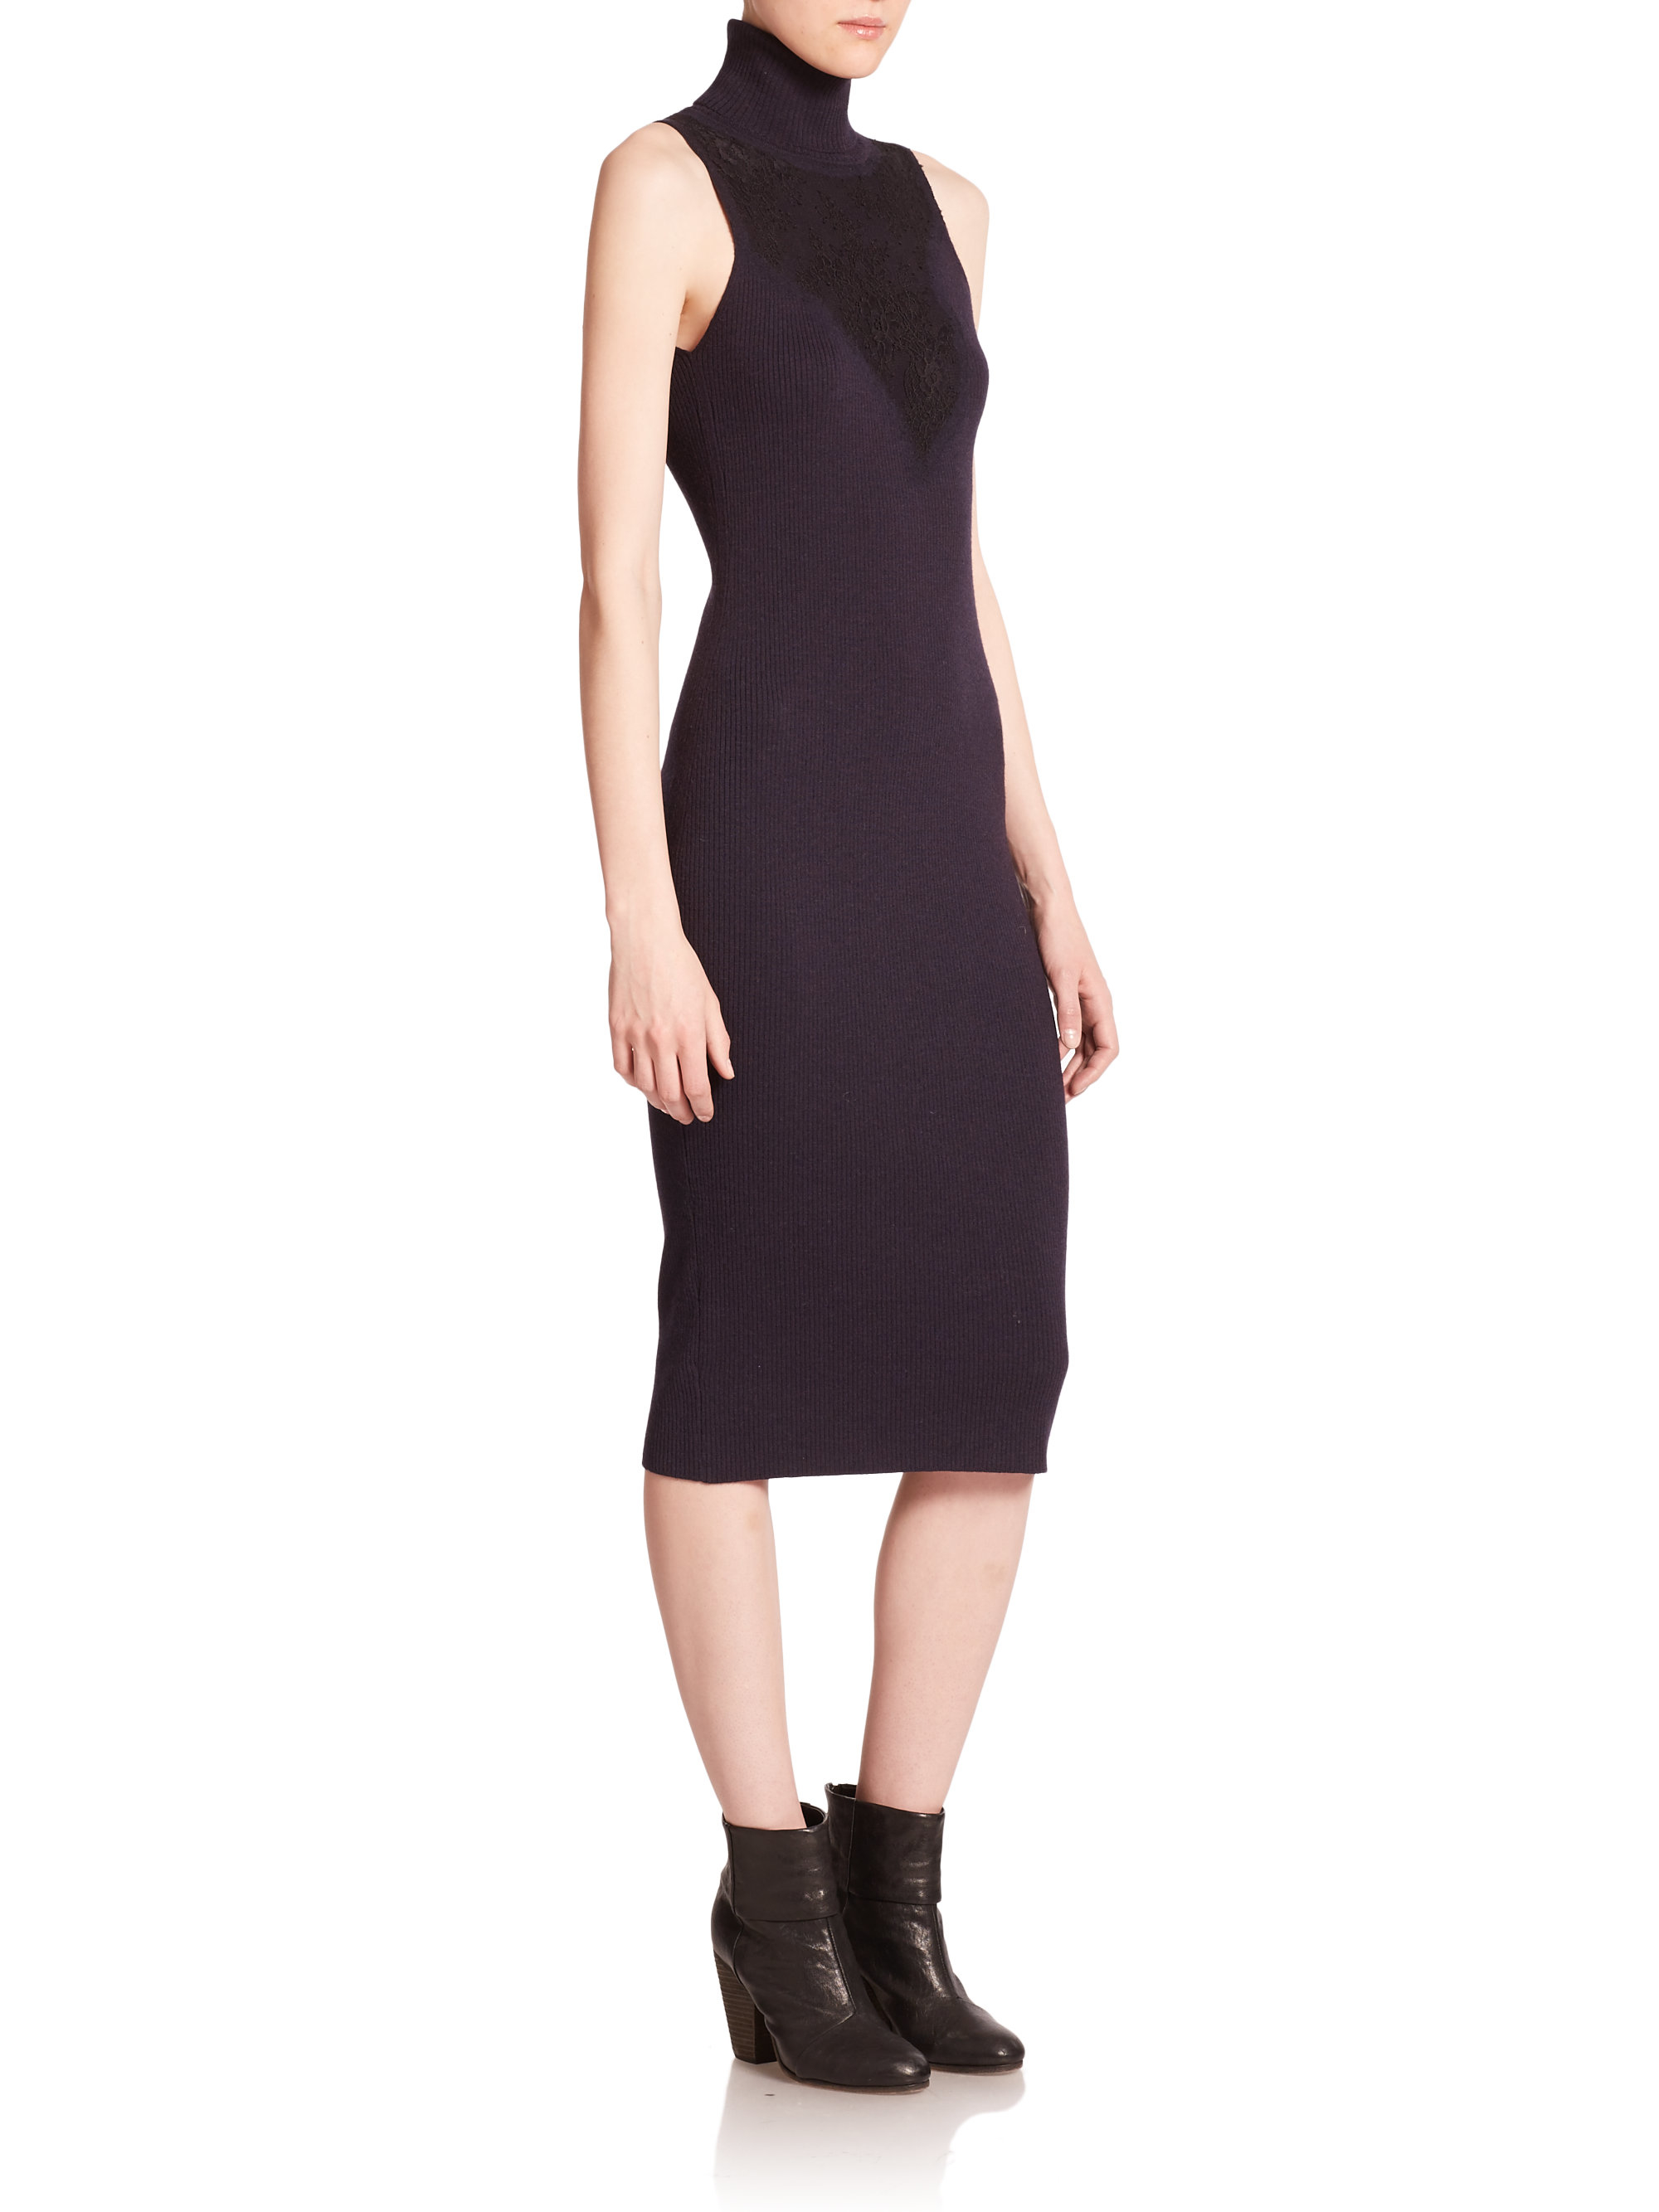 Outlet Store For Sale Sale For Sale Rag & Bone Merino Wool Sleeveless Dress Best Choice lmu1mKl